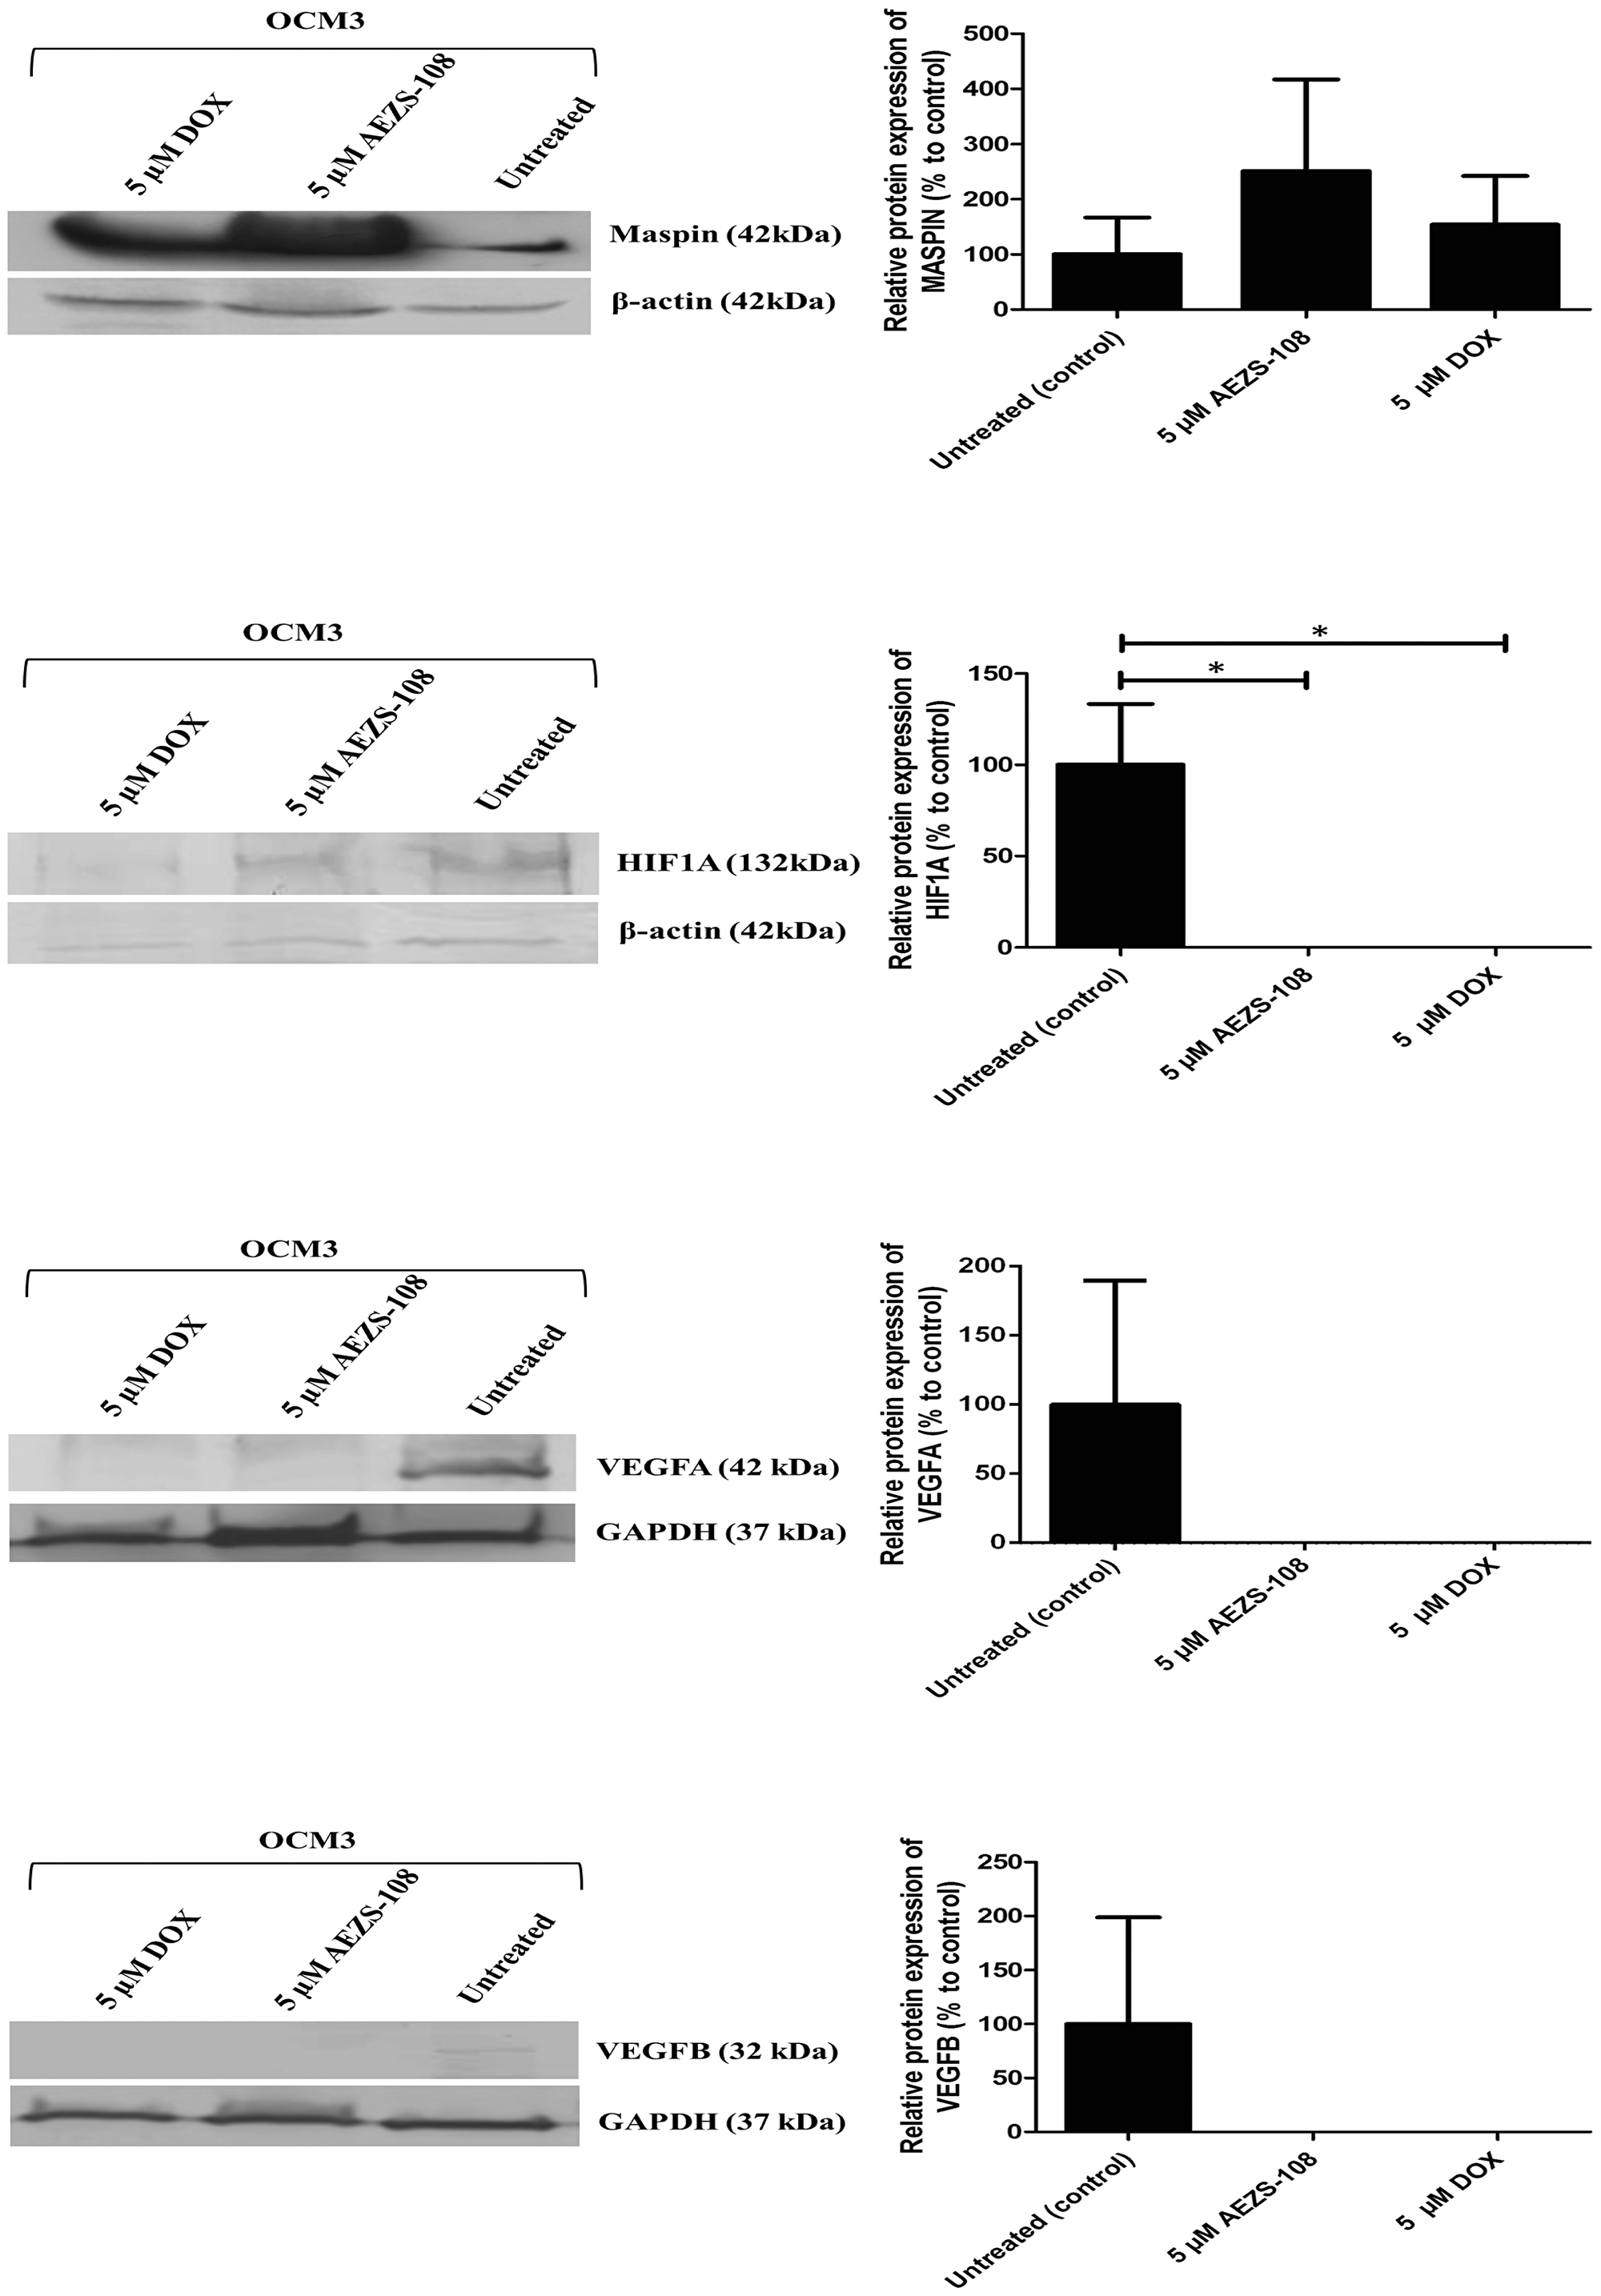 Western blot analysis of MASPIN, HIF1A, VEGFA and VEGFB protein expression after 24 hours of treatment with 5 µM AEZS-108 and 5 µM free DOX treatments from OCM3 cells.